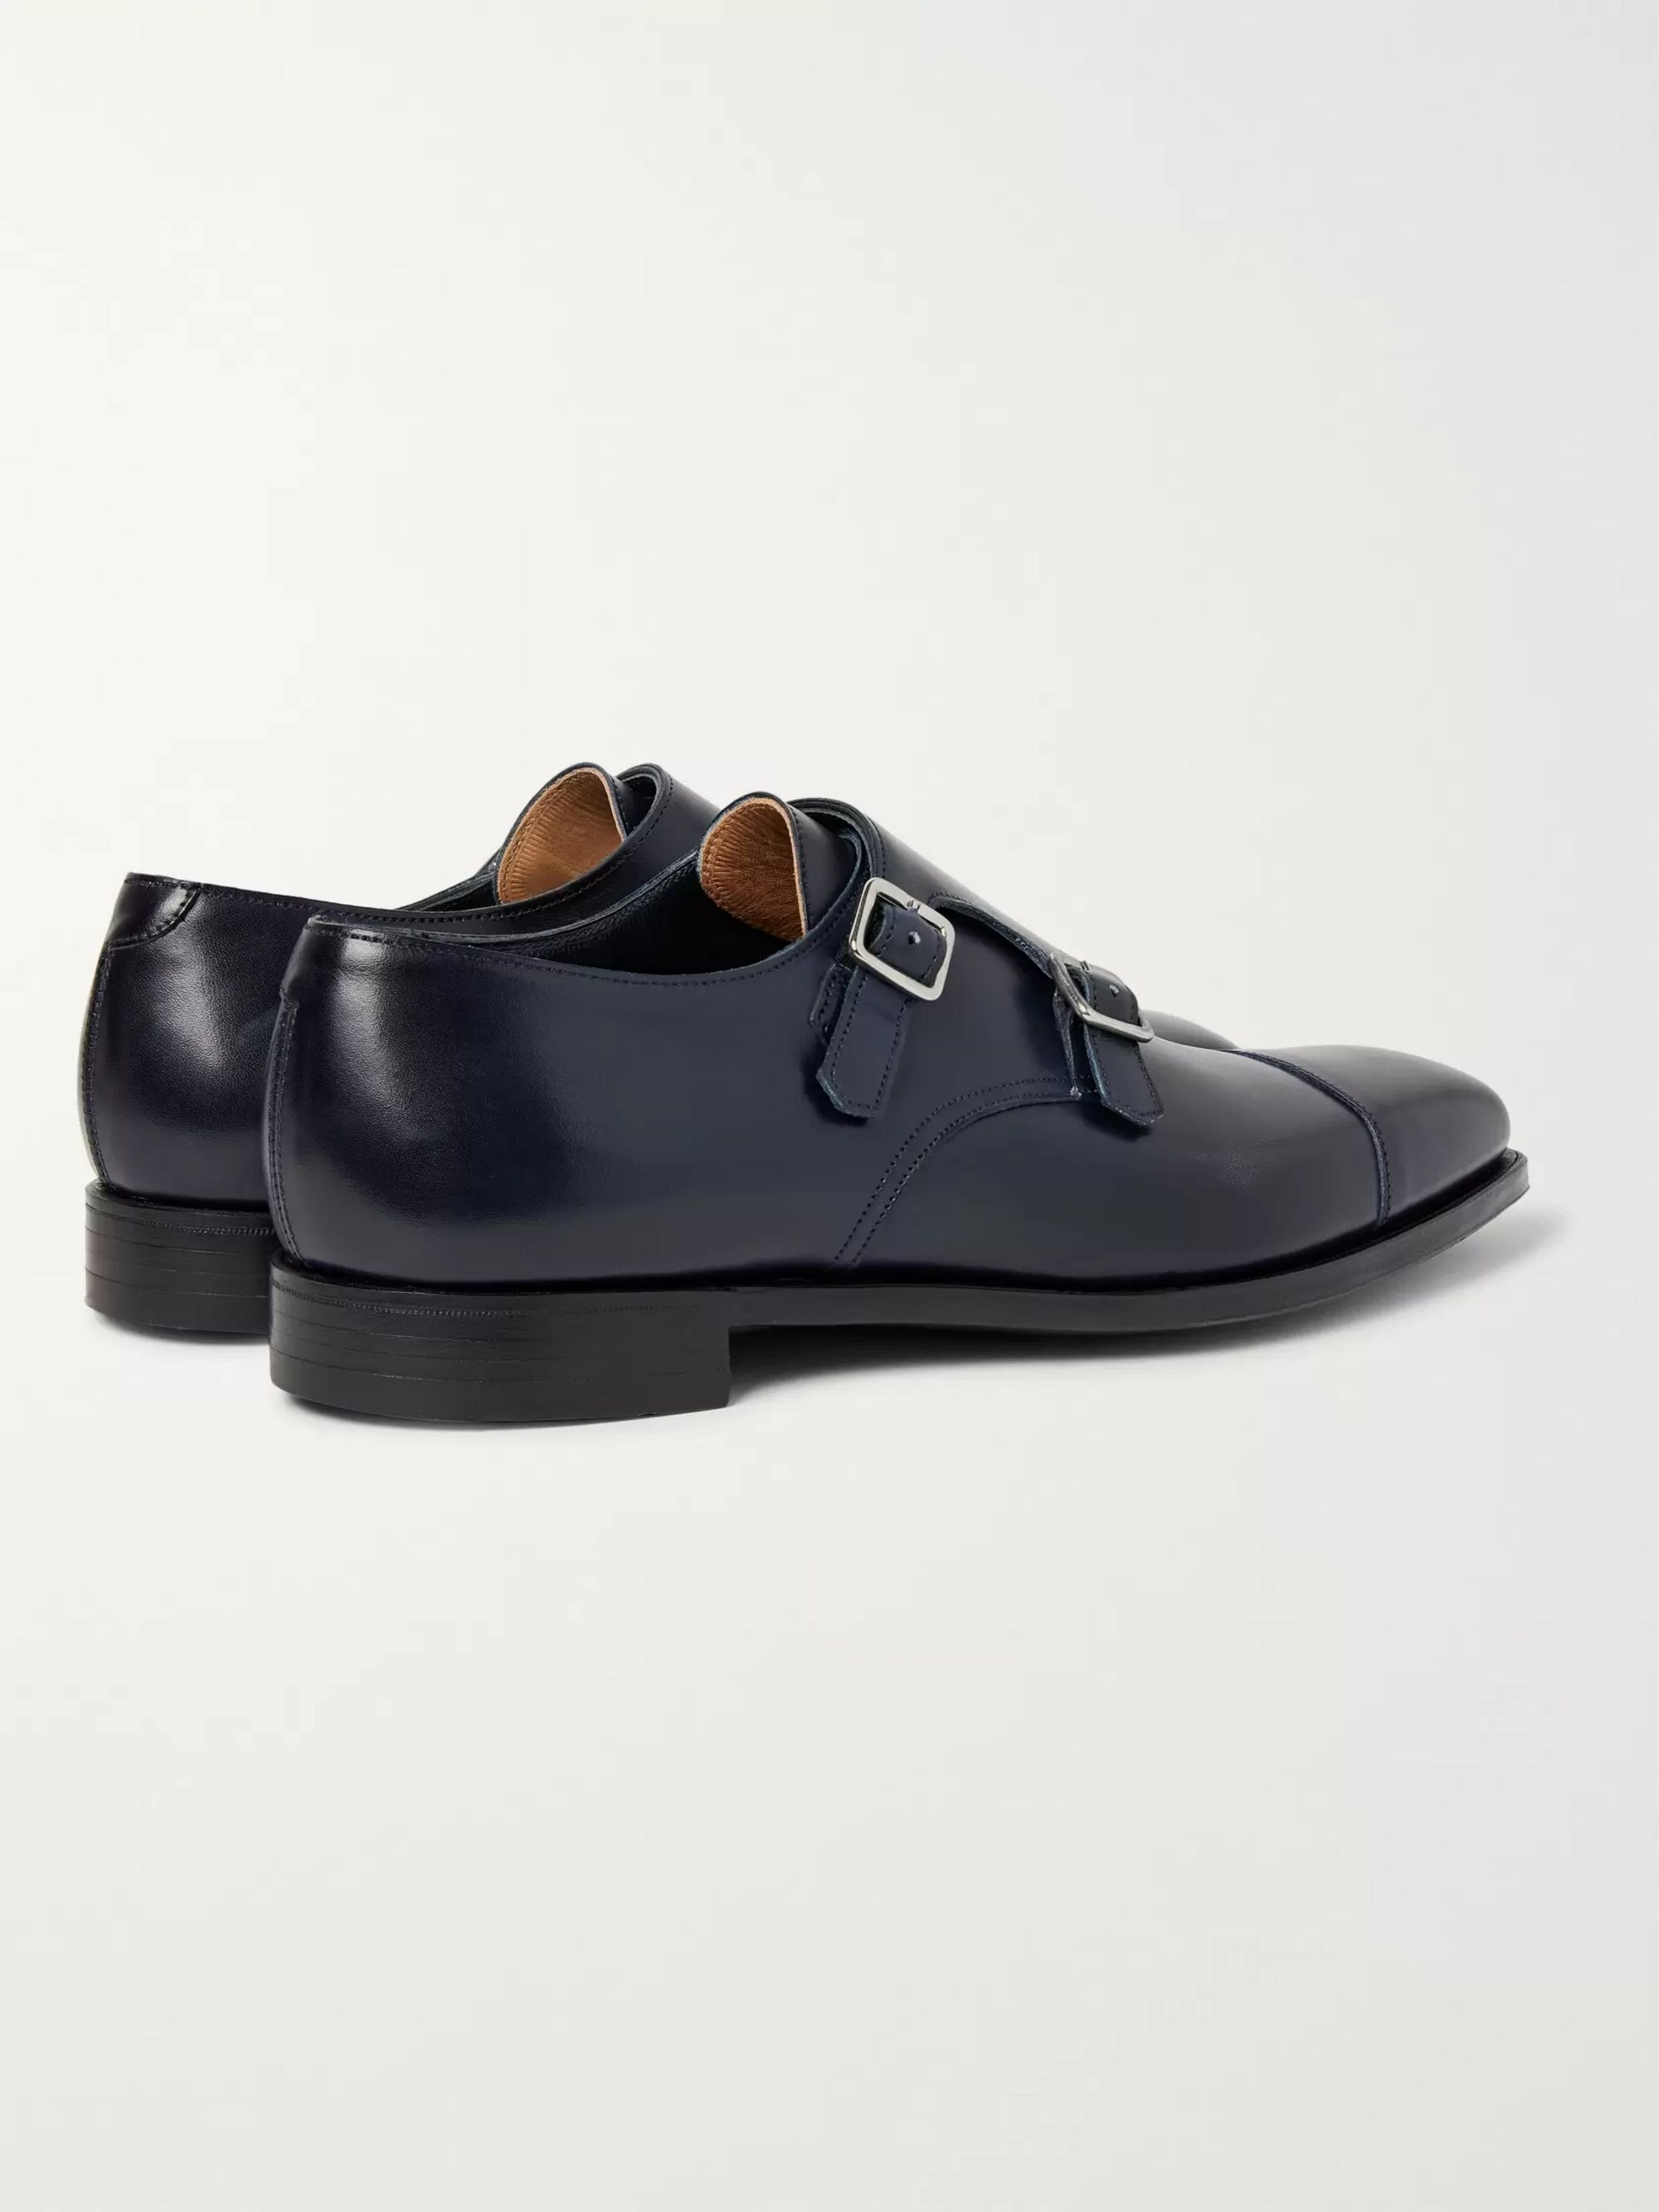 George Cleverley Thomas Cap-Toe Leather Monk-Strap Shoes